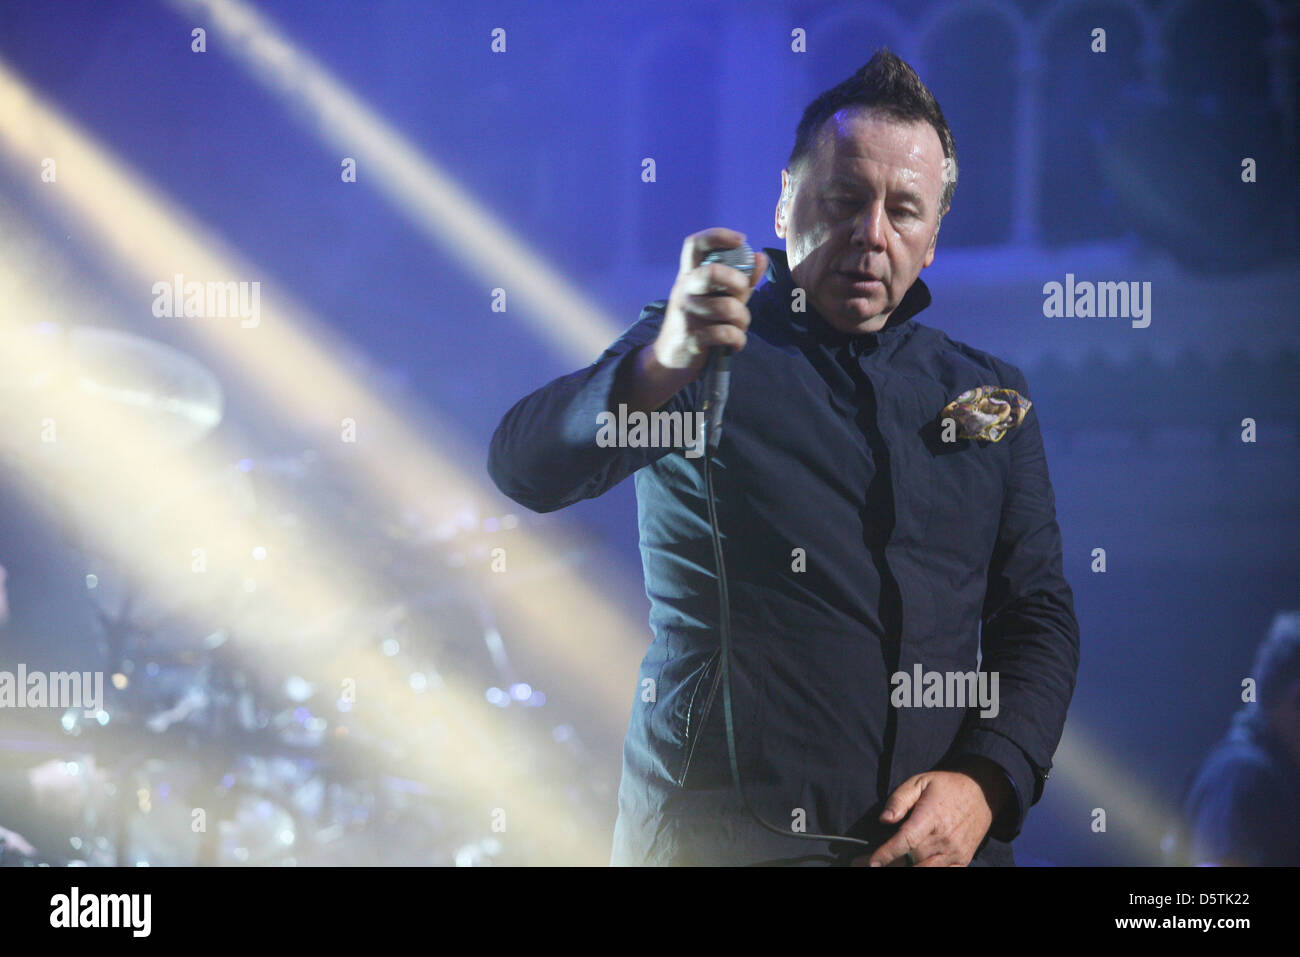 Jim Kerr Simple Minds performing at the Paradiso in Amsterdam Amsterdam, The Netherlands - Stock Image